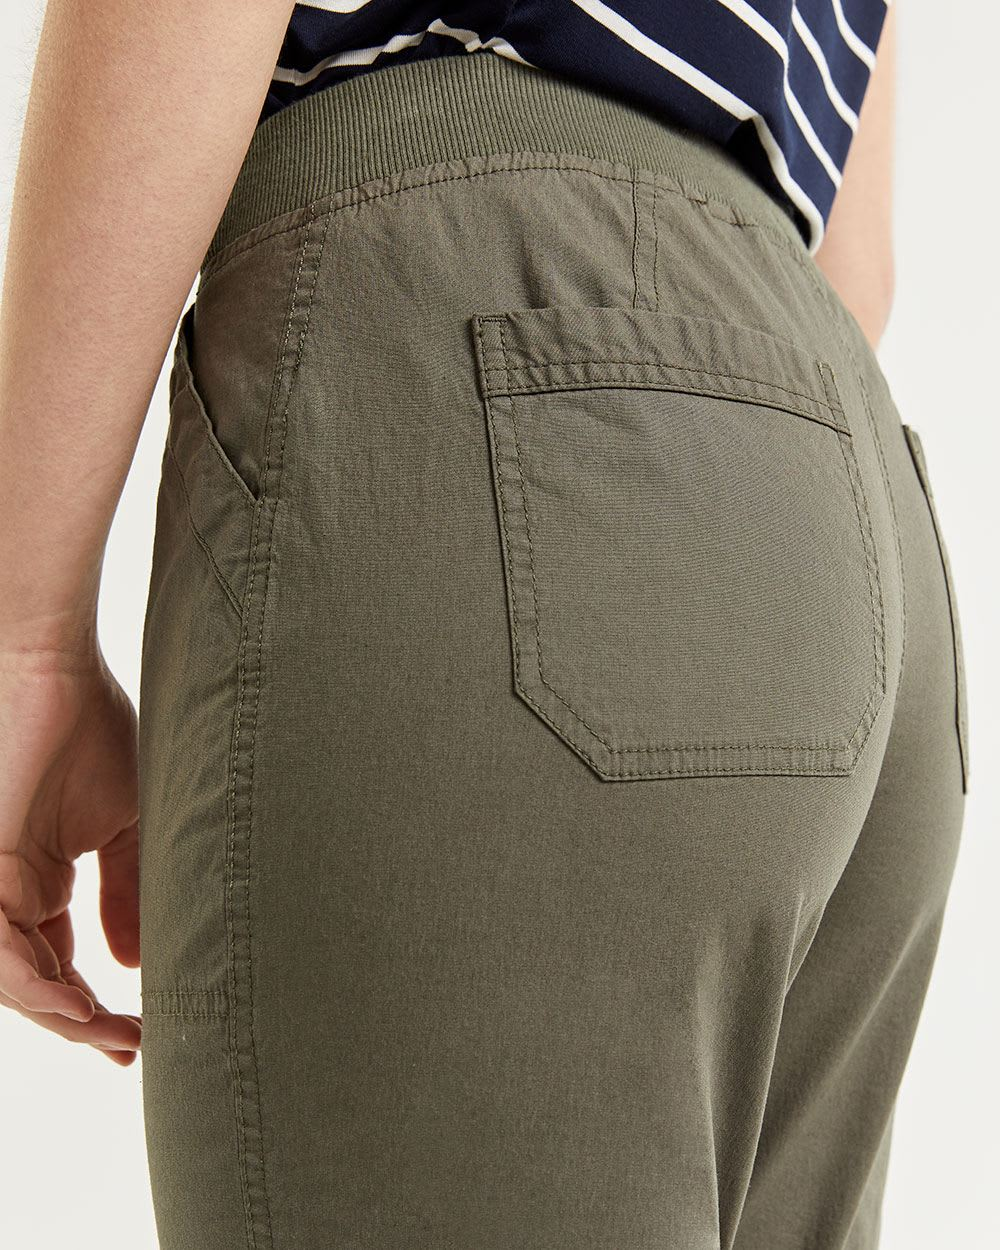 Capri Pants with Adjustable Hem